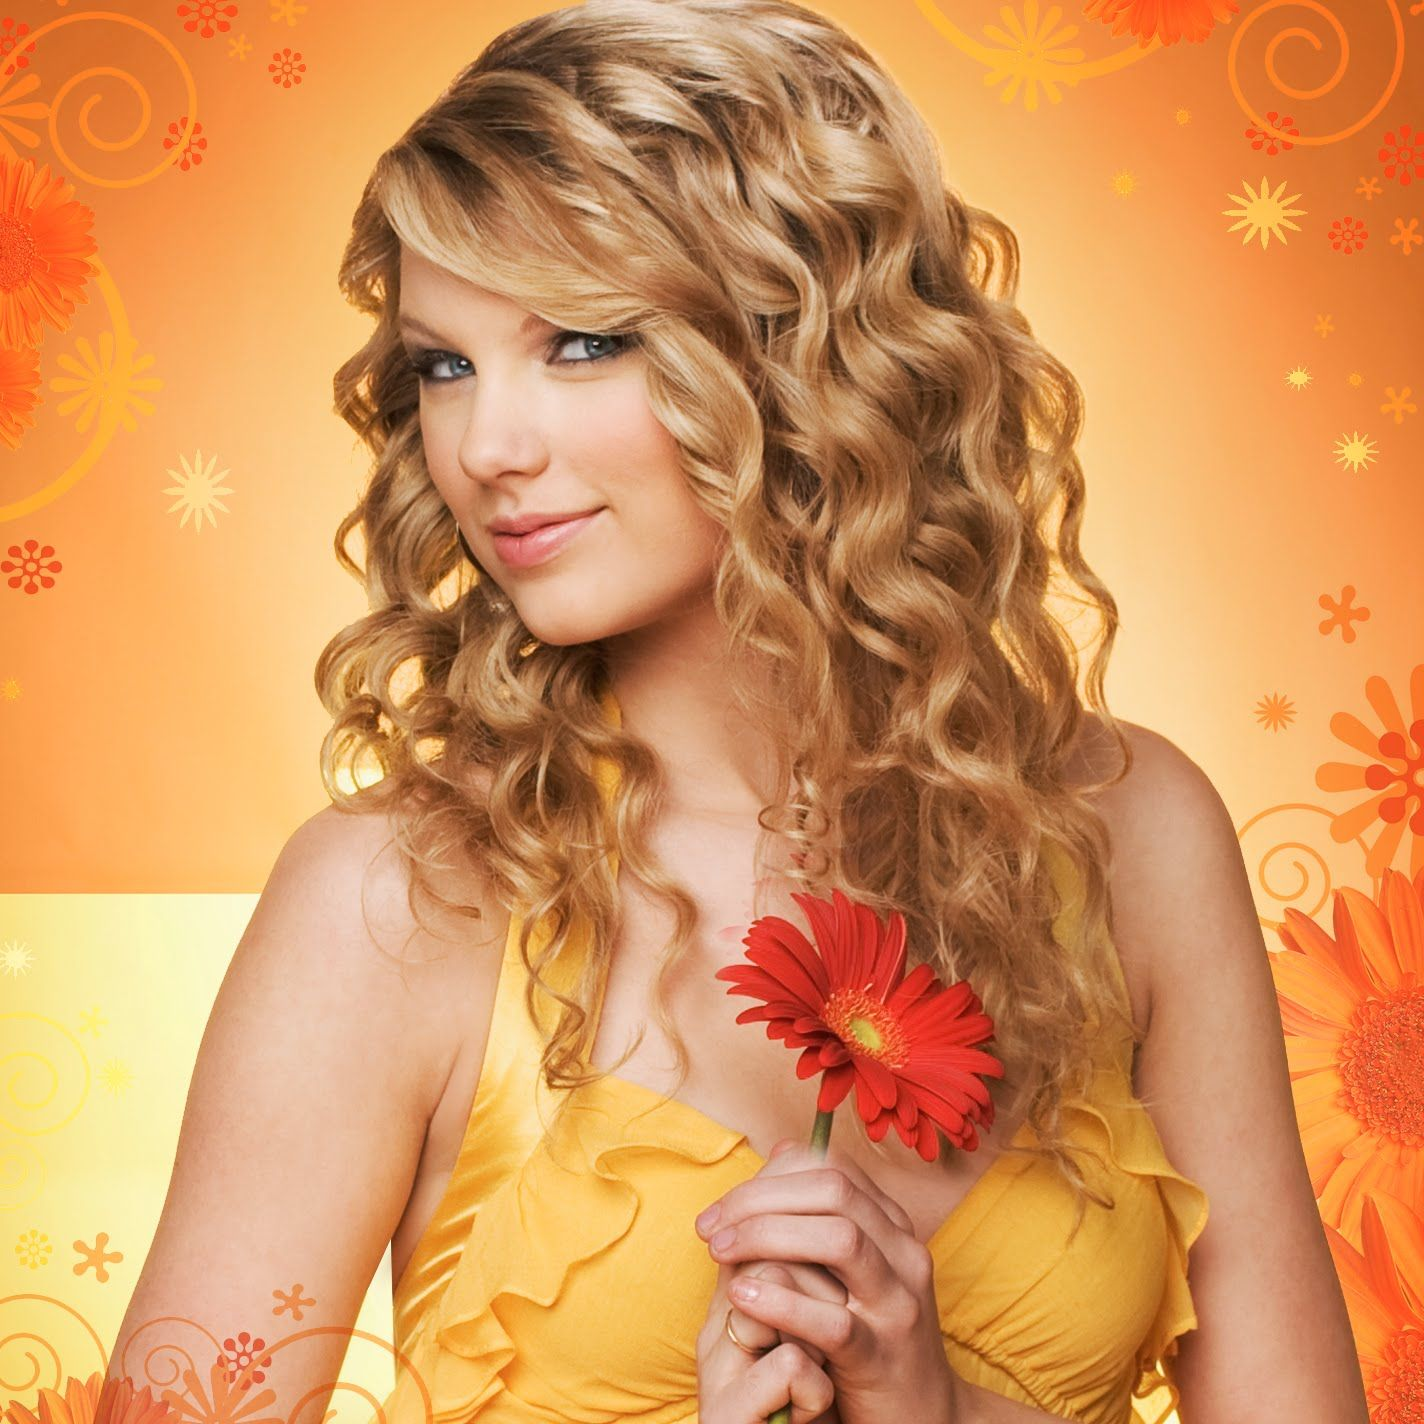 taylor swift coloring pages printable Above Photo Courtesy of